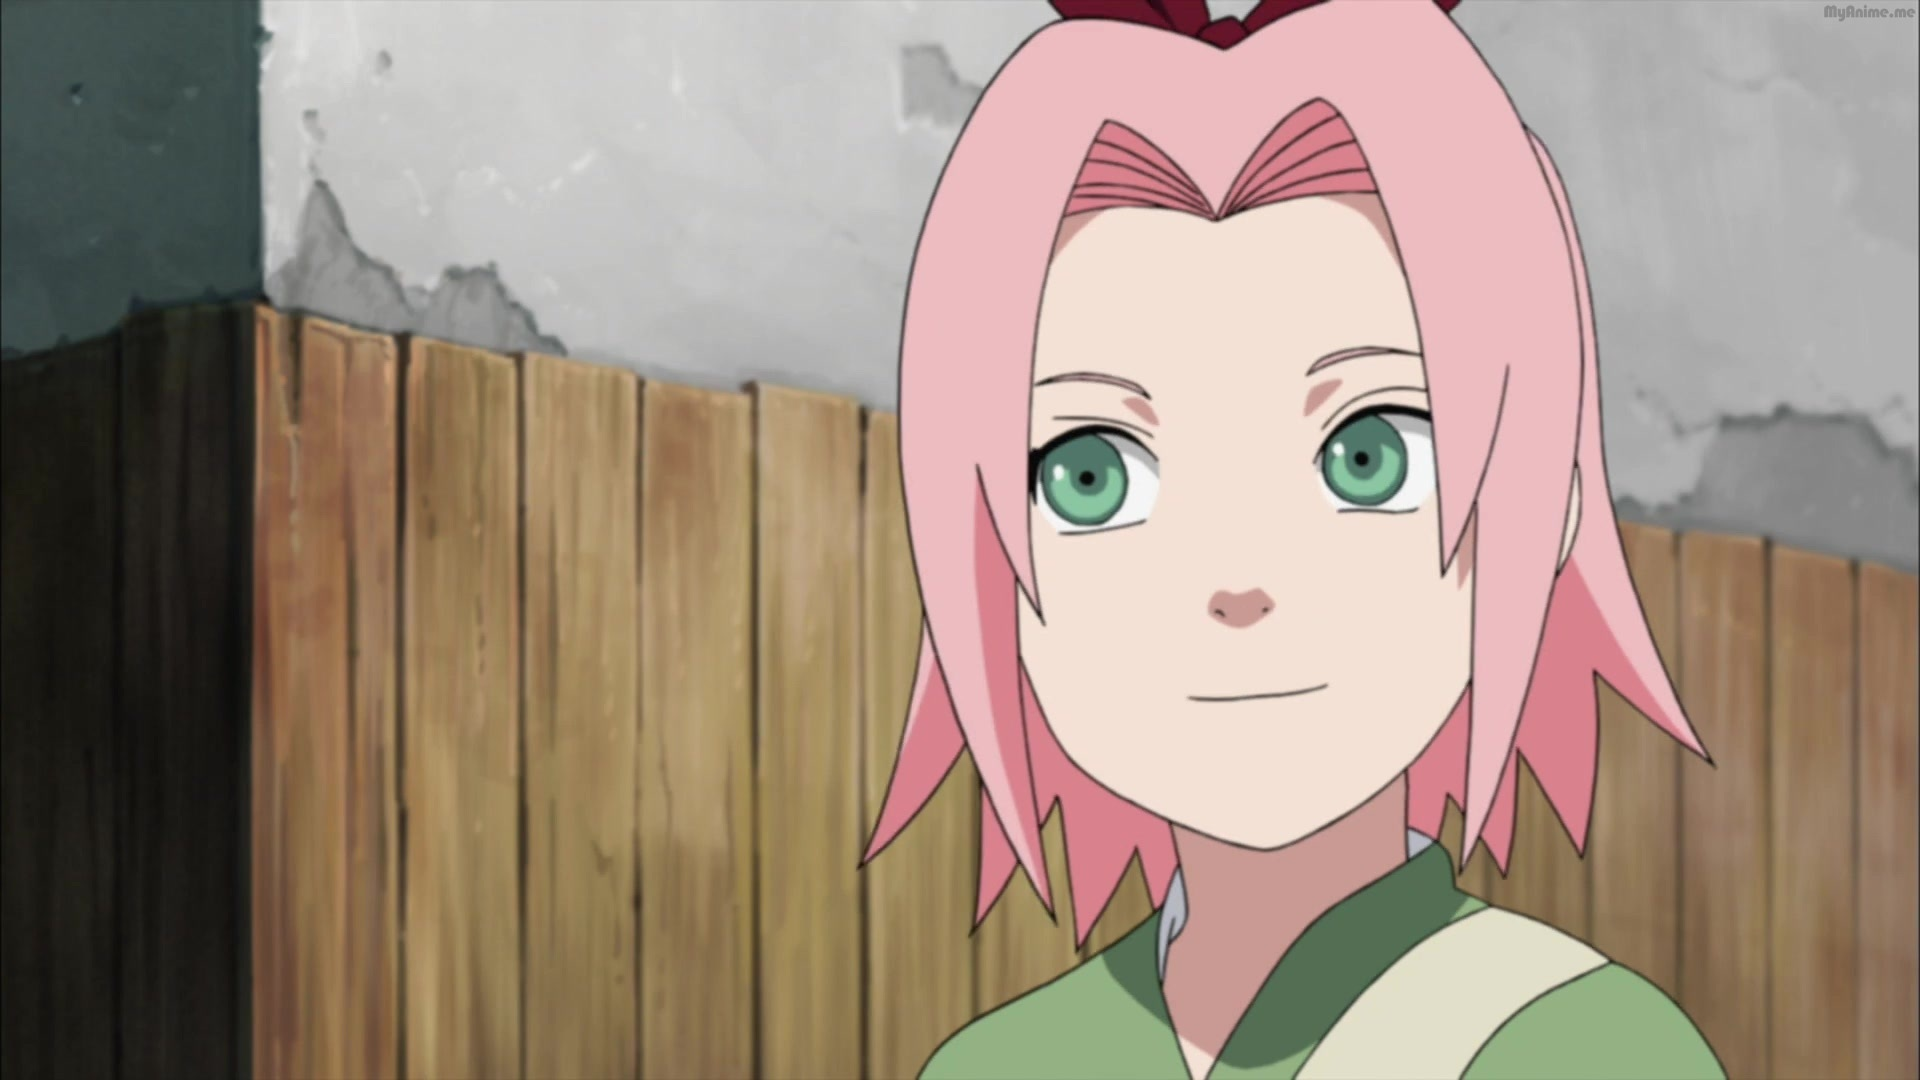 Naruto-Shippuuden-episode-314-screenshot-014.jpg